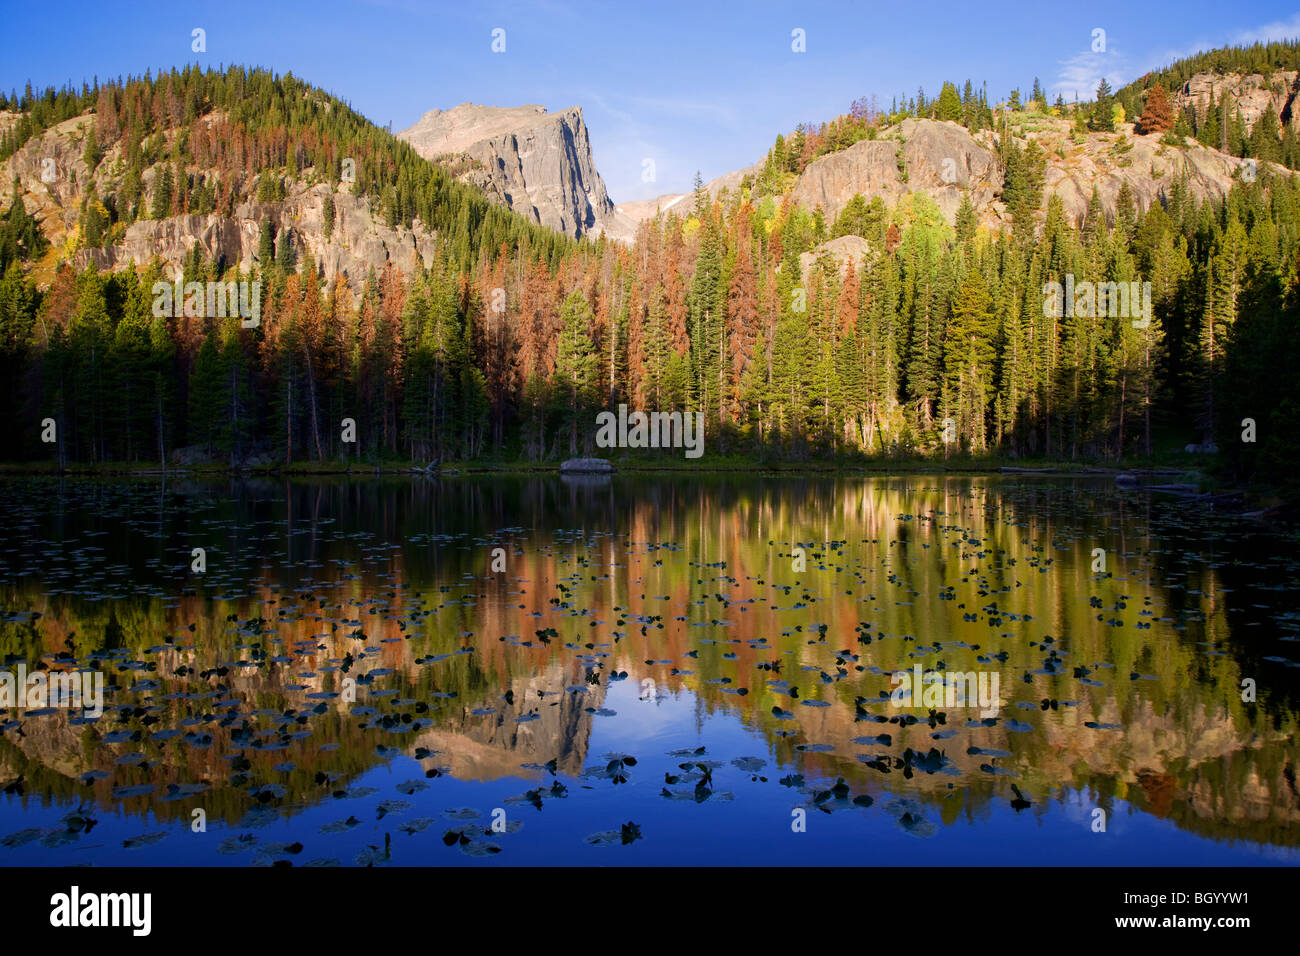 Lac de nymphe, Rocky Mountain National Park, Colorado. Photo Stock